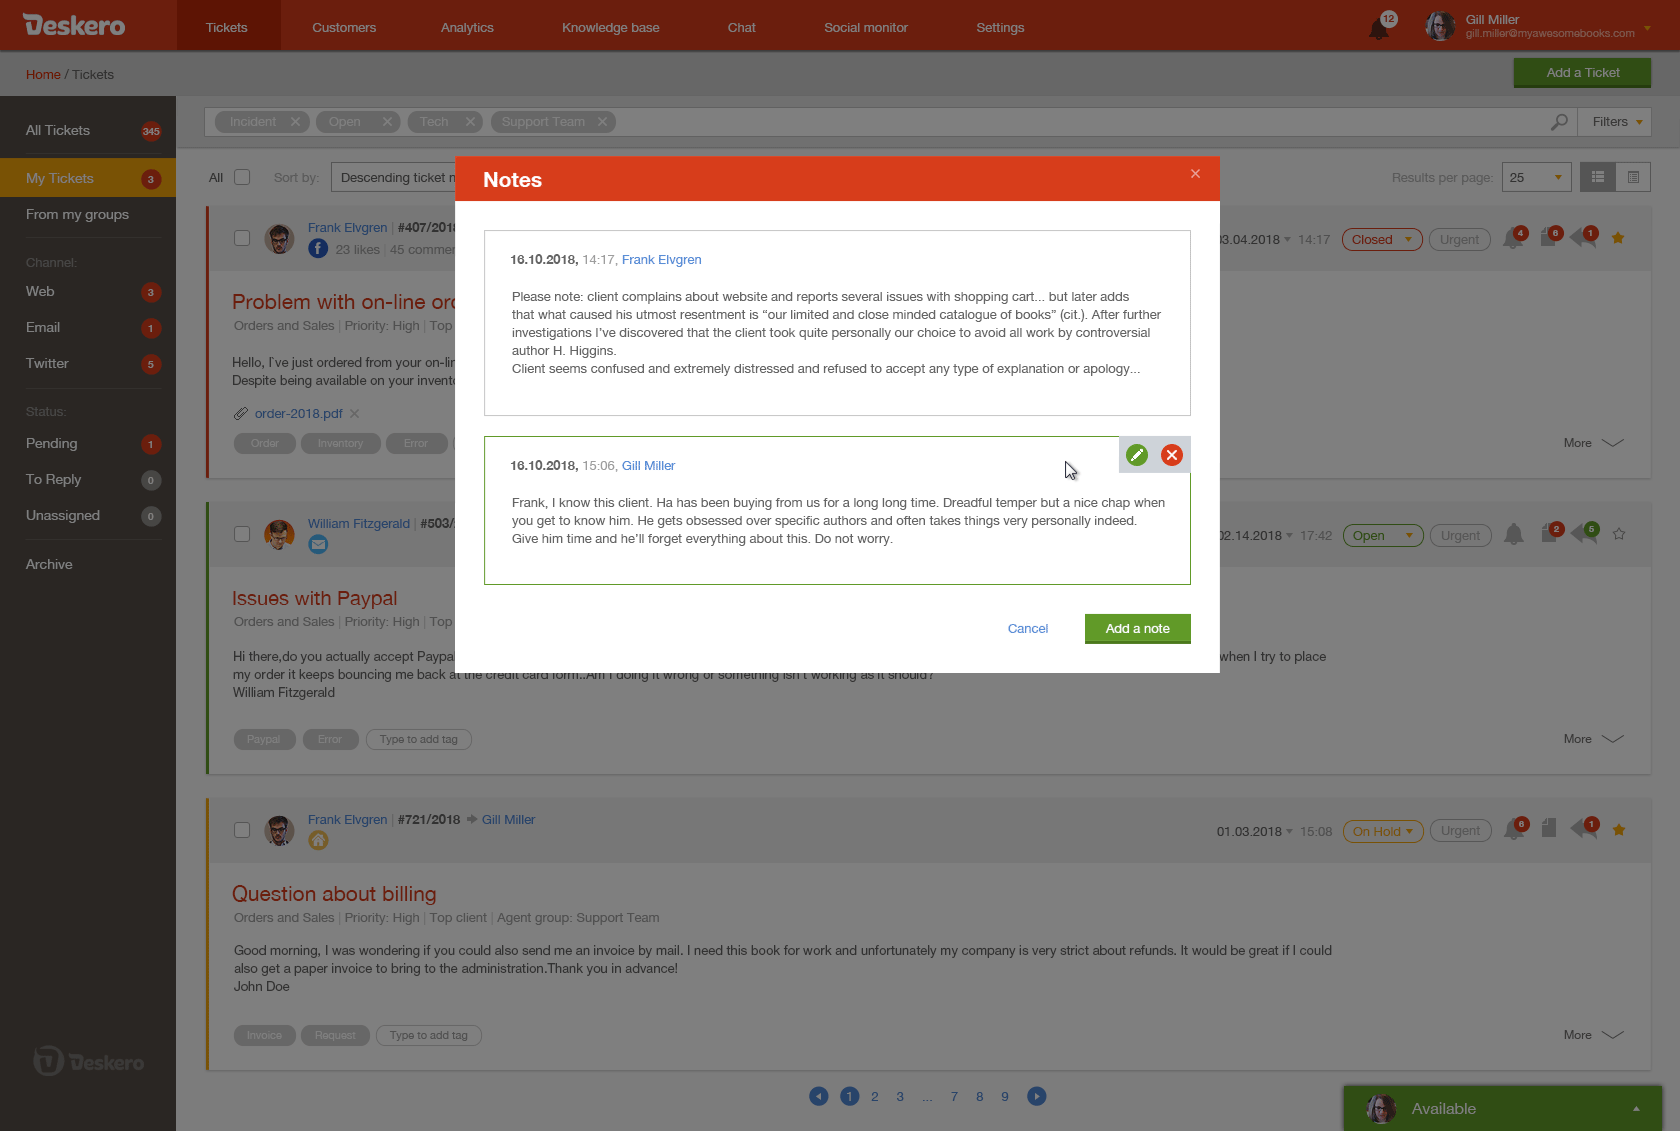 Add notes to your tickets to share internal information with other agents